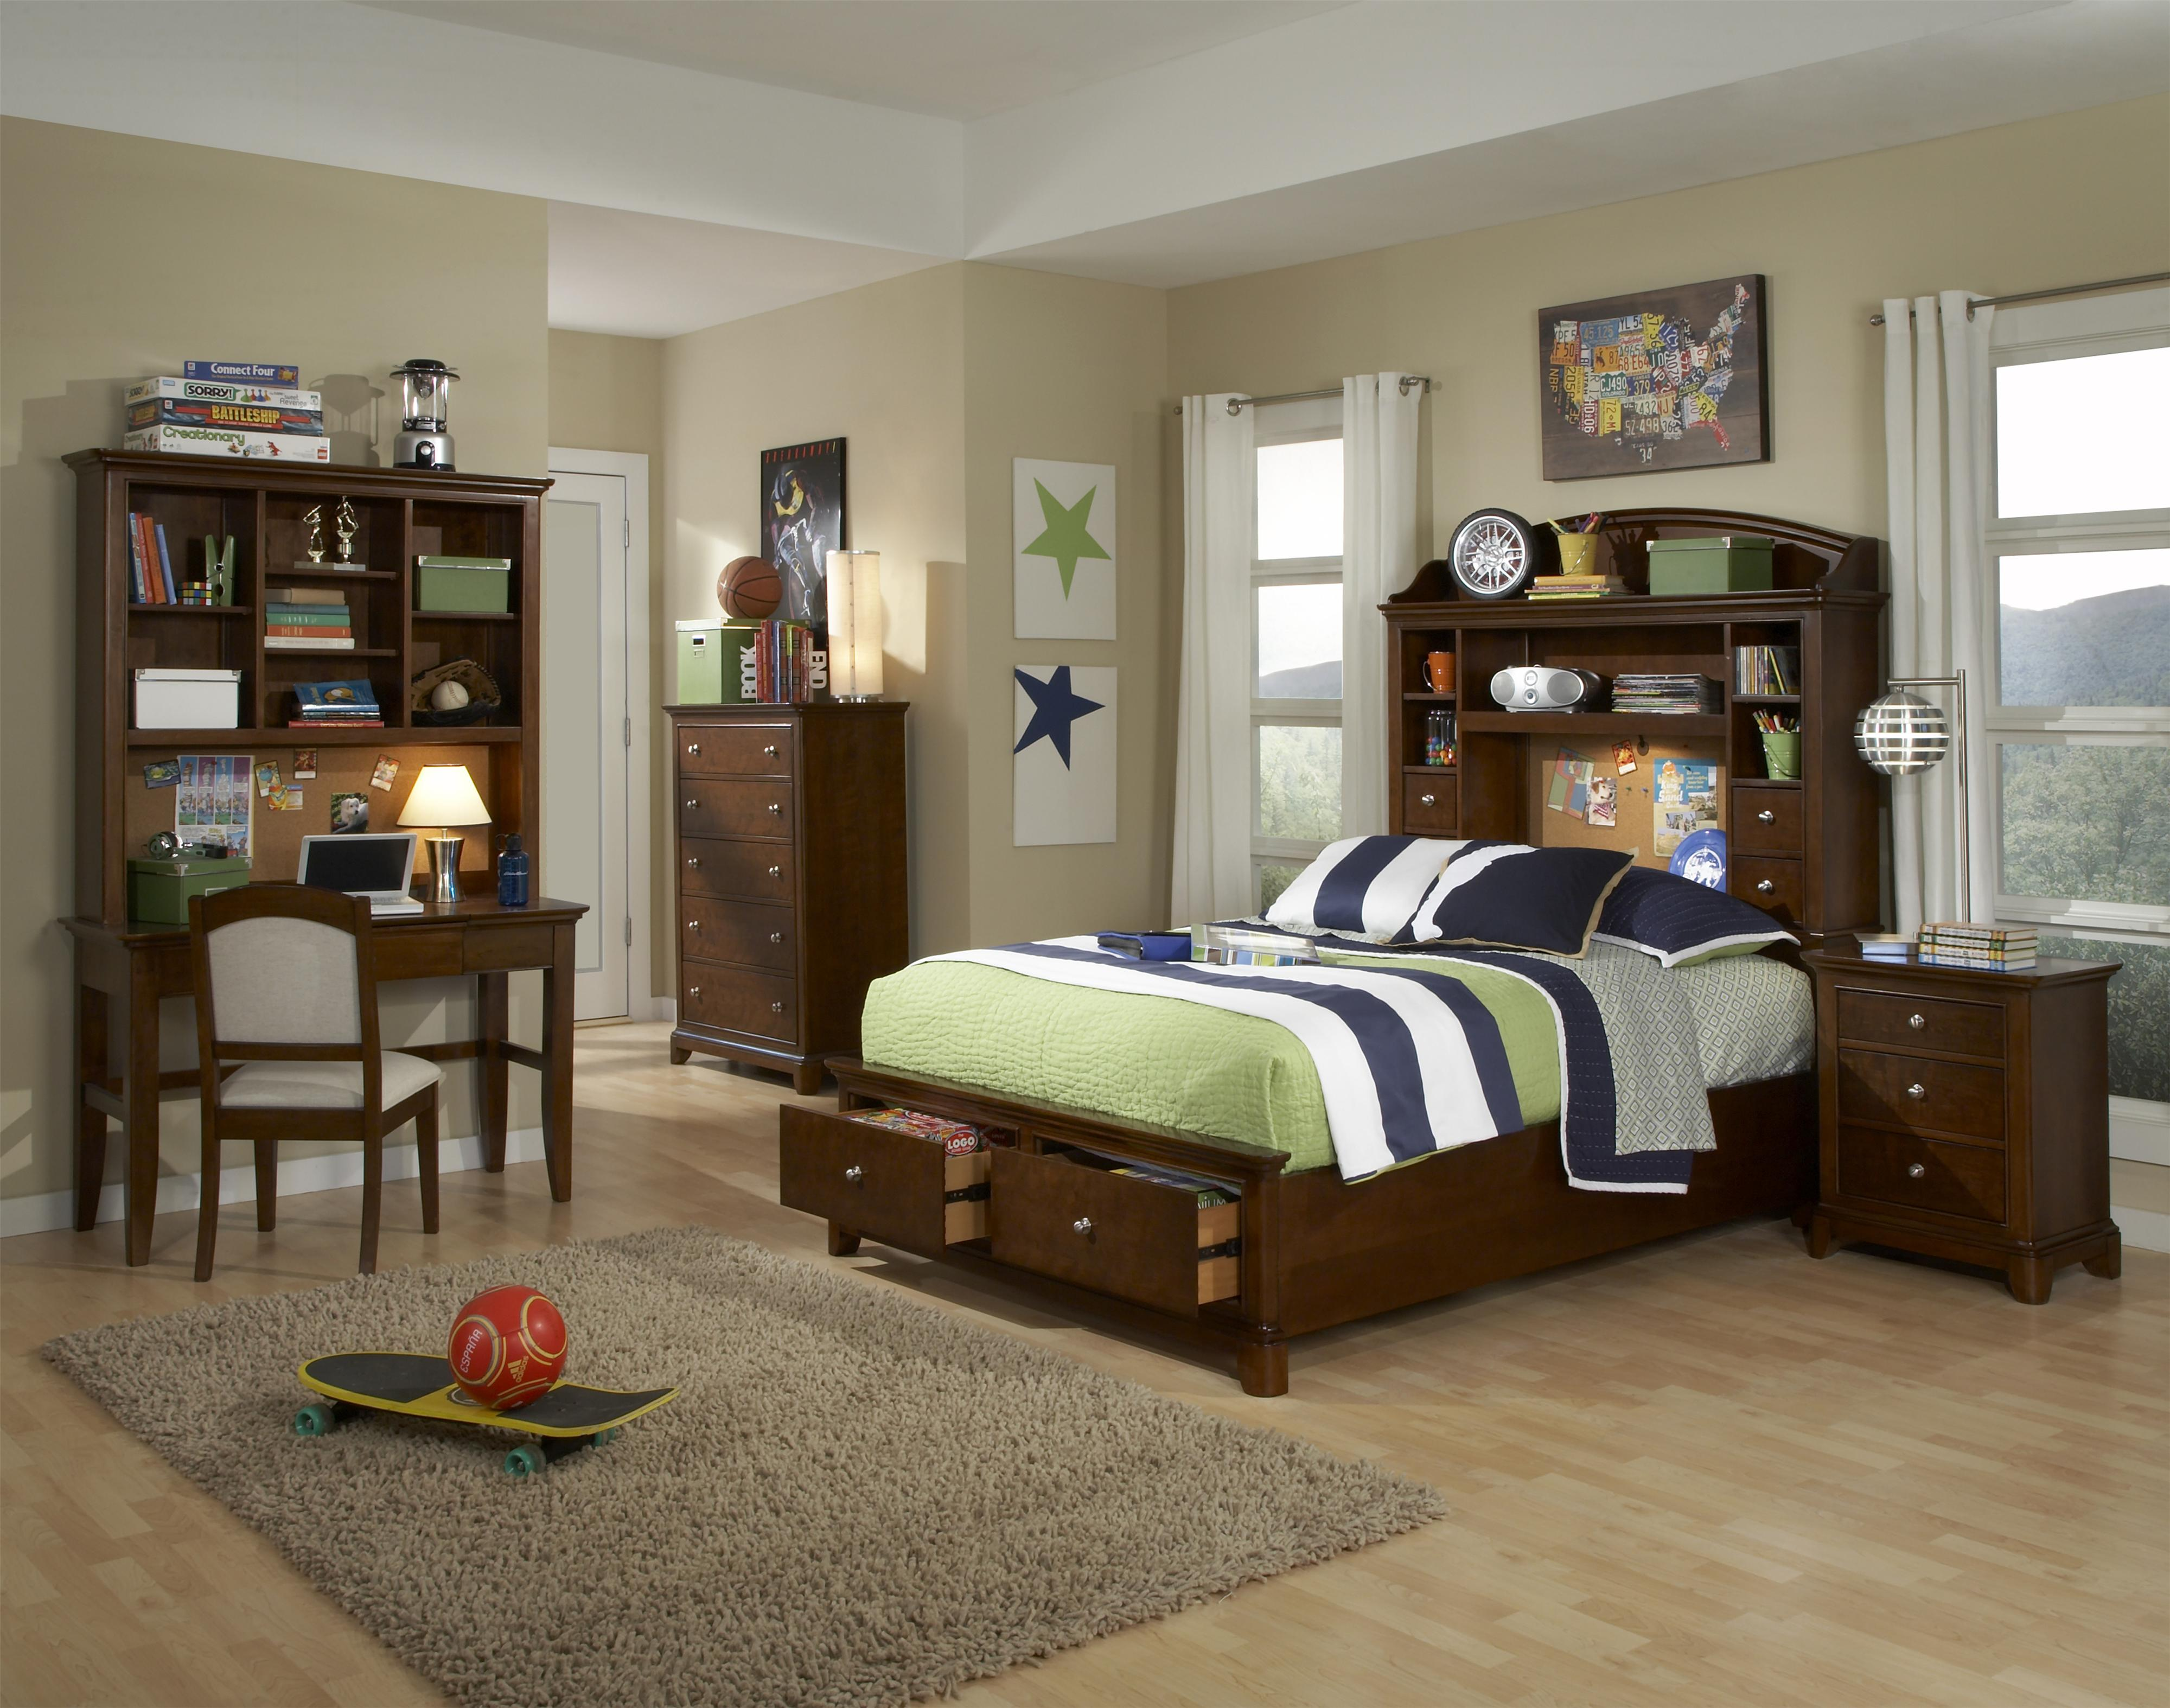 Legacy Classic Kids Impressions Twin Bedroom Group - Item Number: 2880 T Bedroom Group 1